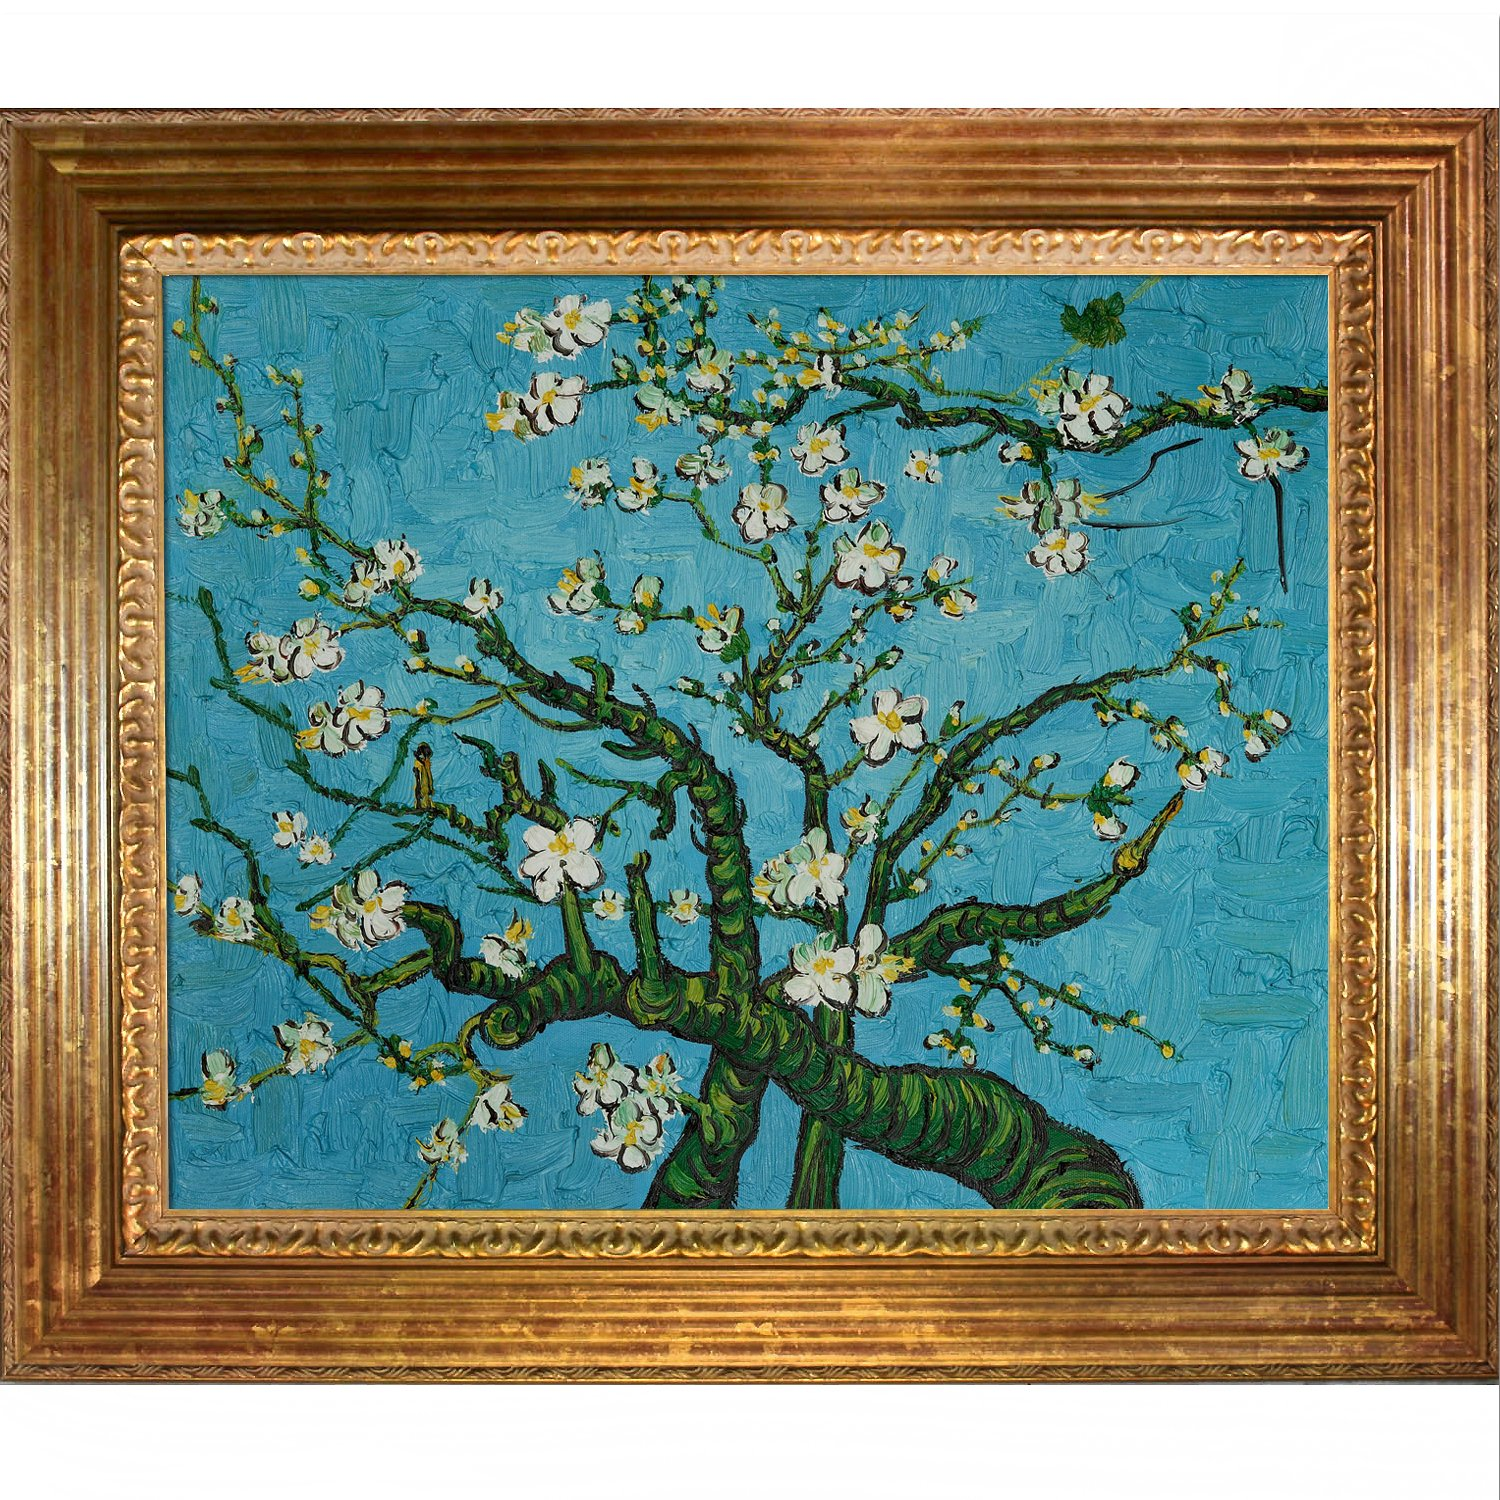 overstockArt Van Gogh Branches of An Almond Tree in Blossom with Vienna Wood Frame in Gold Leaf Finish